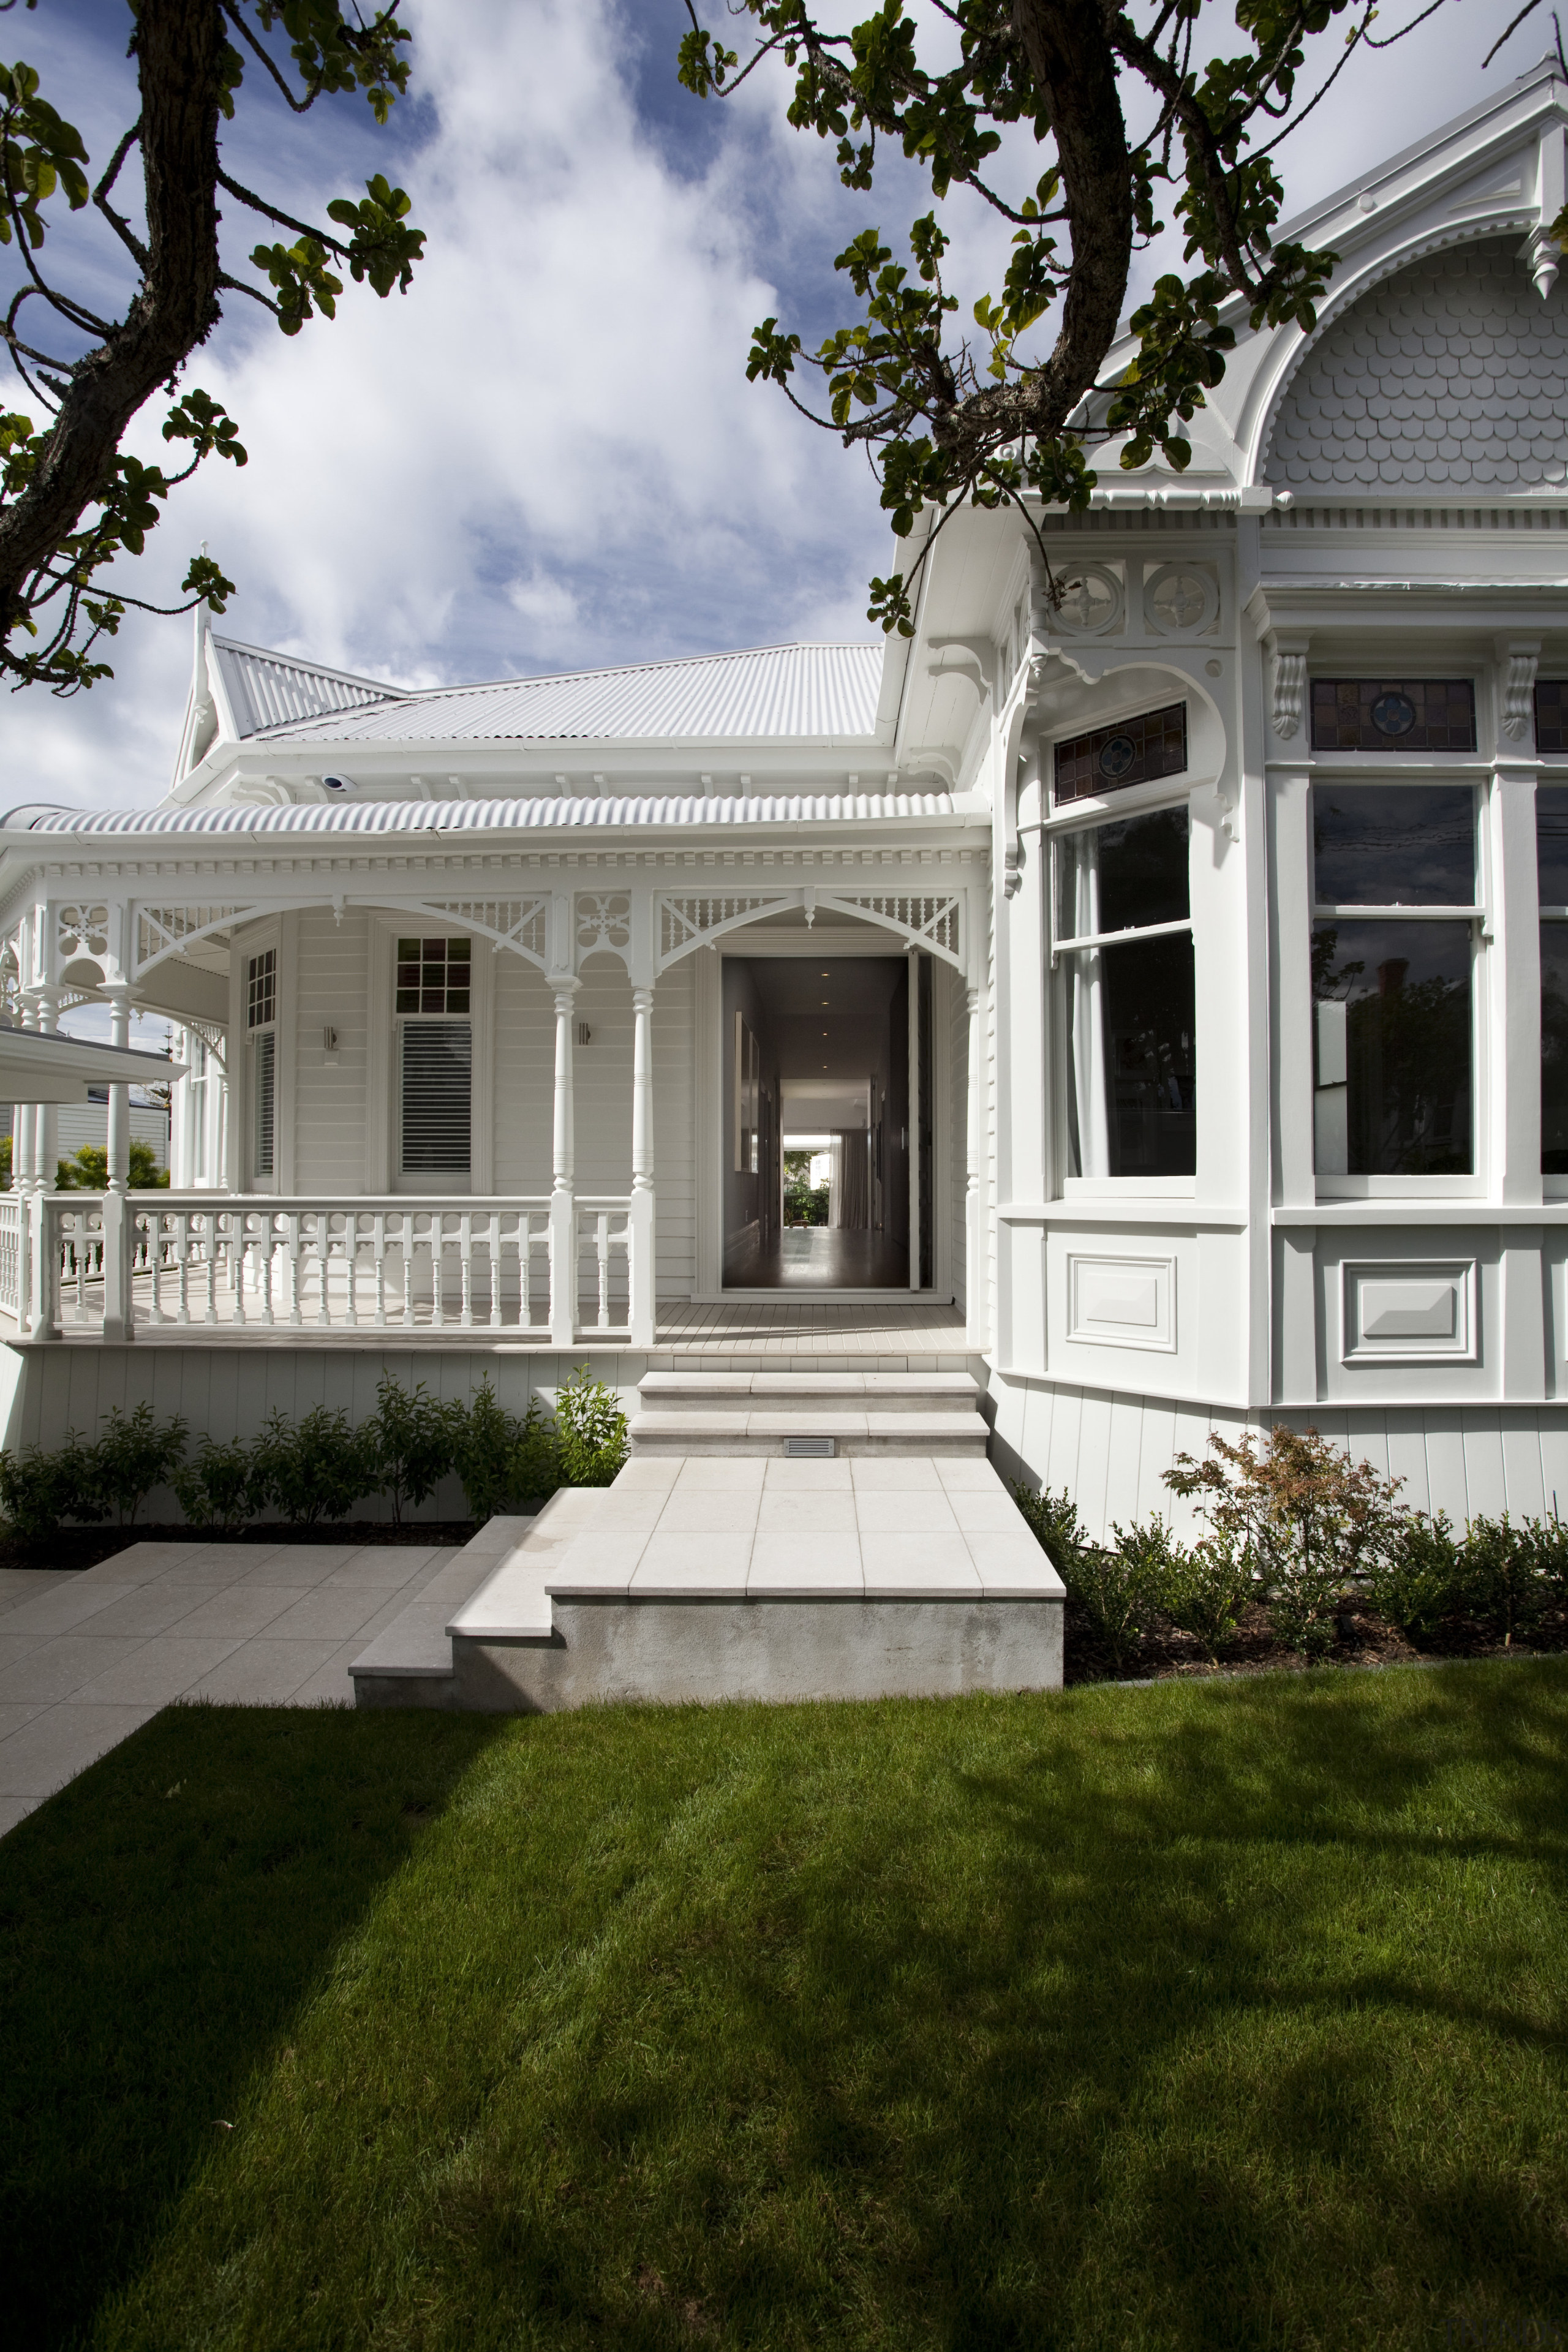 All the original character of this return-veranda bungalow architecture, backyard, building, cottage, courtyard, estate, facade, grass, historic house, home, house, landscaping, lawn, mansion, outdoor structure, plantation, porch, property, real estate, residential area, siding, tree, window, yard, gray, brown